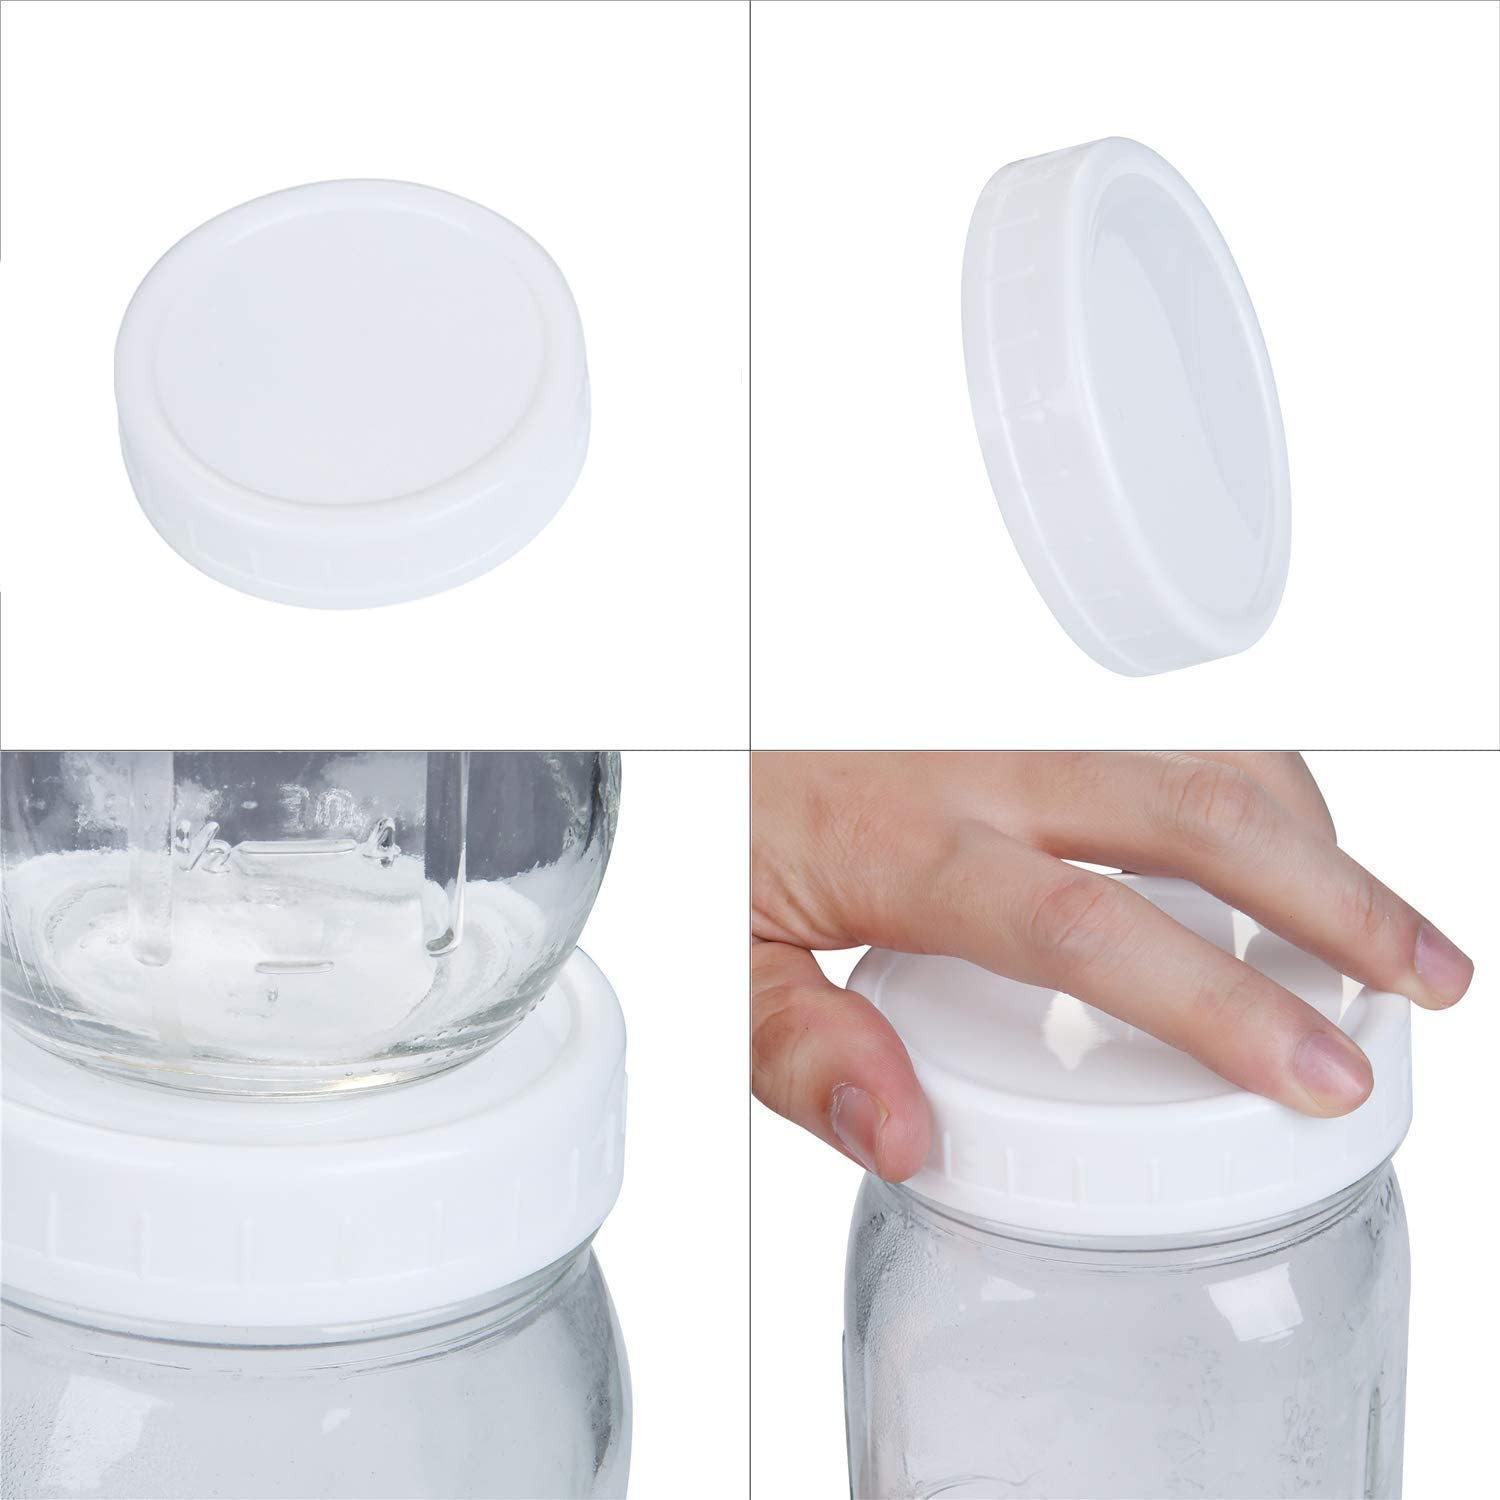 Lopbinte Regular Mouth Lids for Mason Jar Lids Plastic Storage Caps for Mason Canning Jars and More Standard Dia 70mm